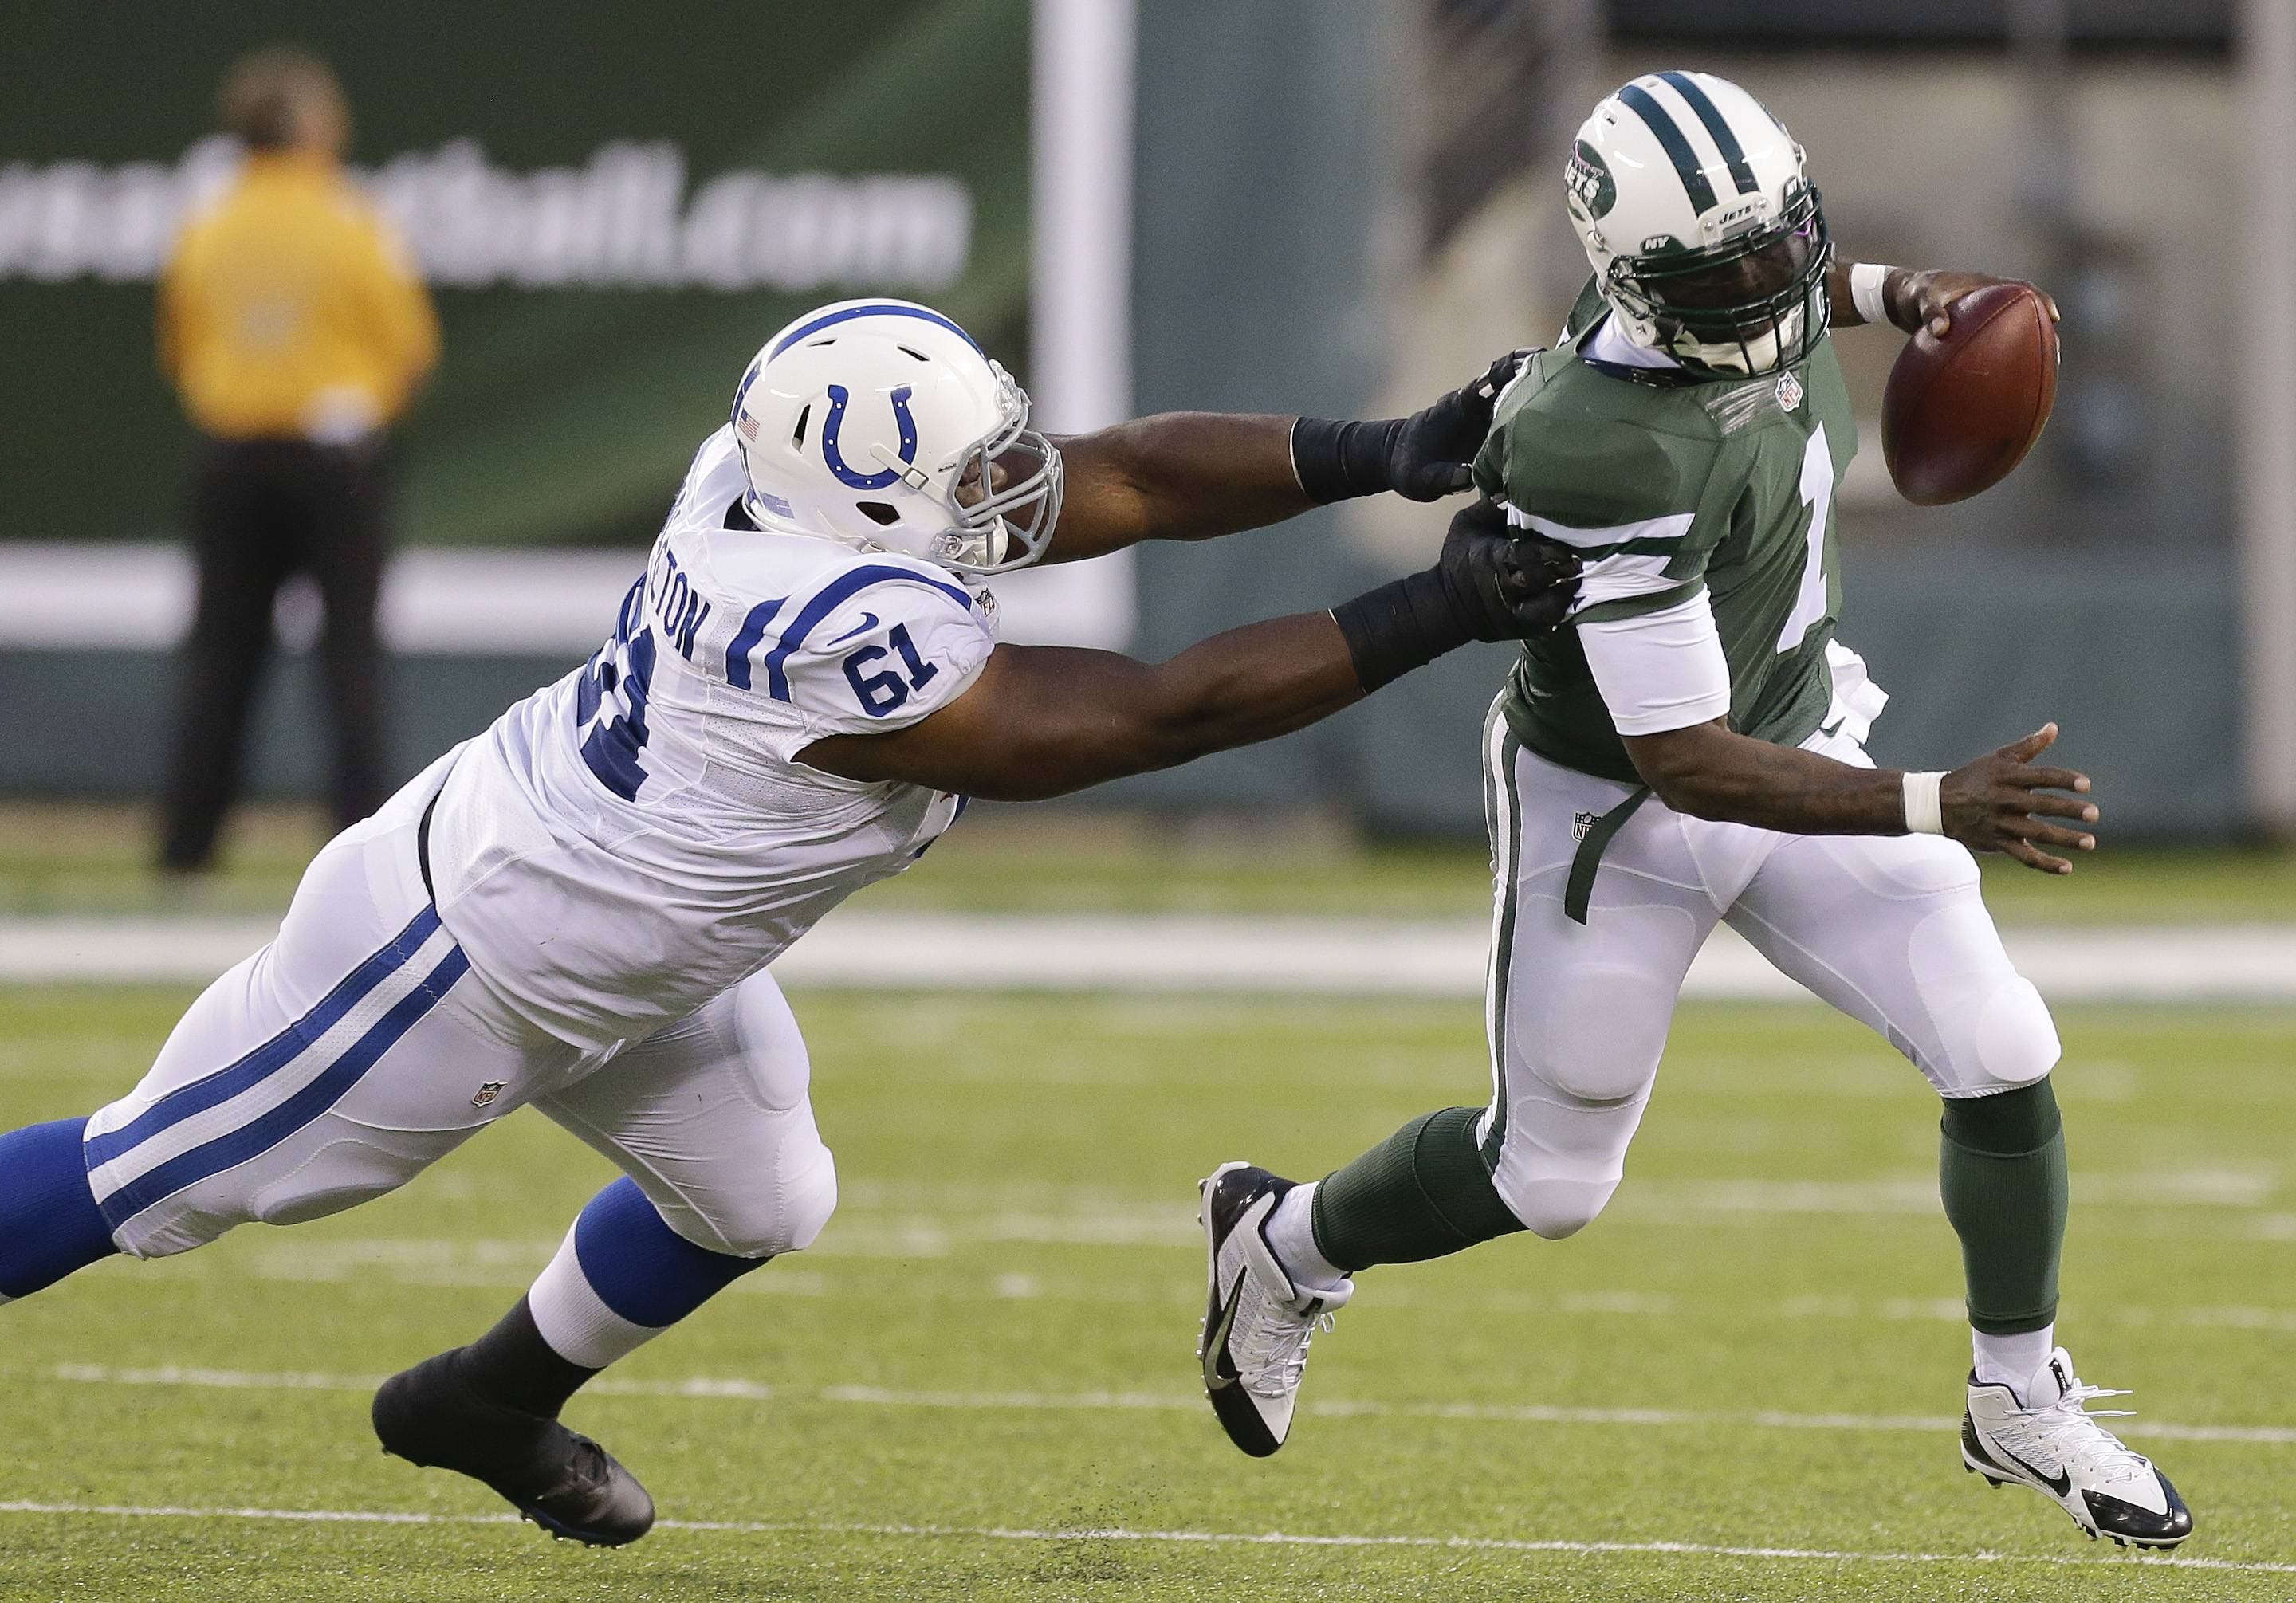 New York Jets quarterback Michael Vick (1) avoids Indianapolis Colts defensive tackle Jeris Pendleton (61) in the second quarter of a preseason NFL football game, Thursday, Aug. 7, 2014, in East Rutherford, N.J.